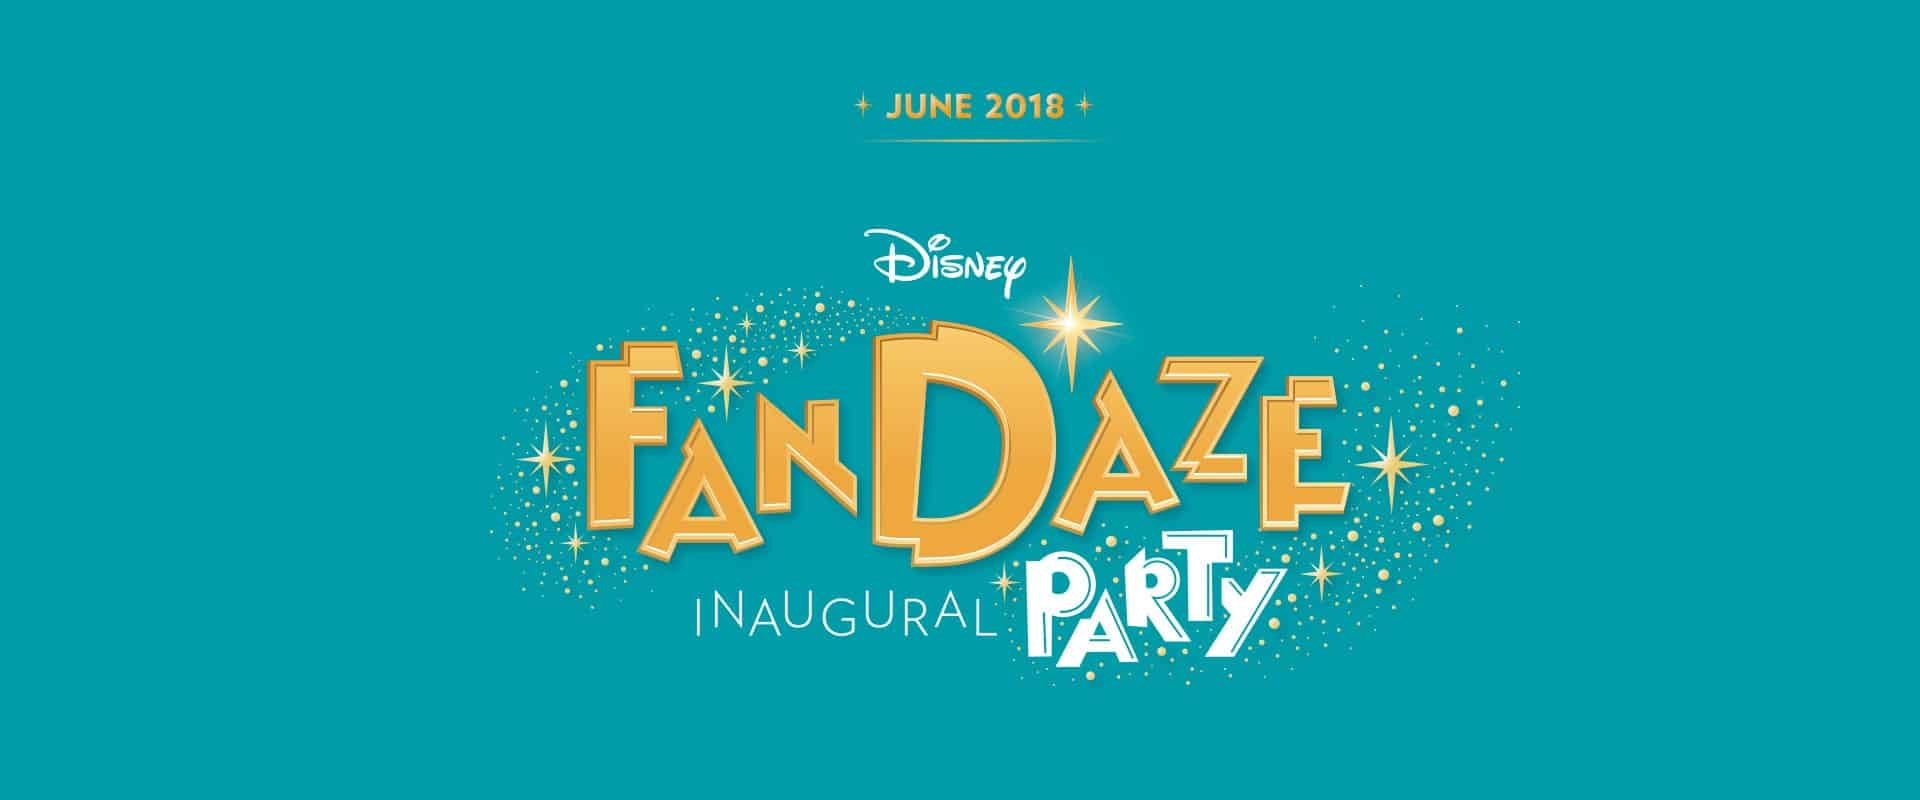 Disney FanDaze Party review, dates, book